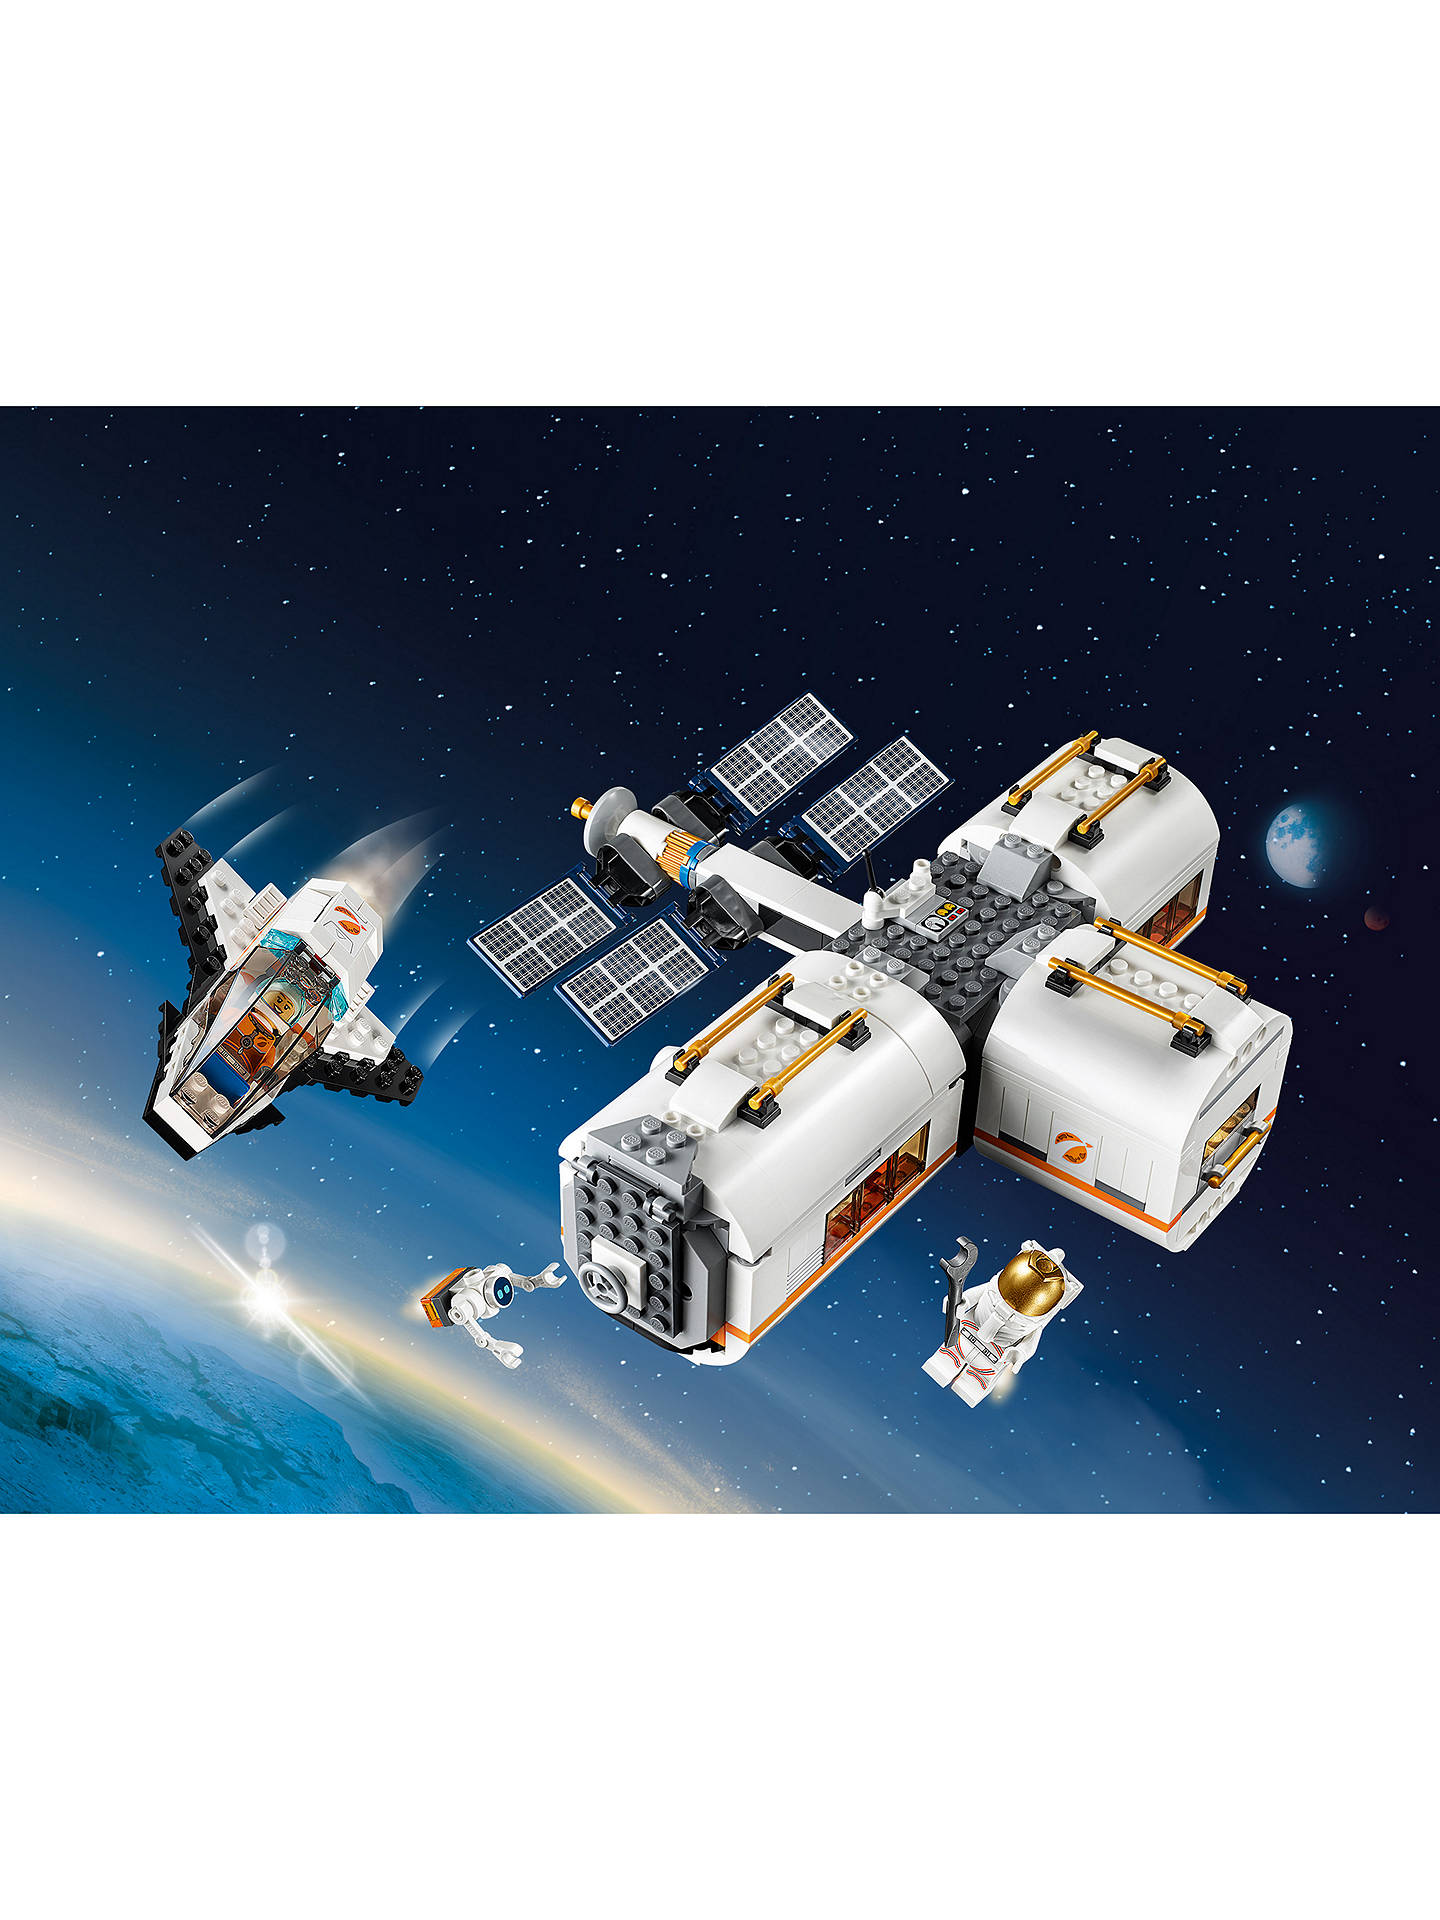 LEGO CITY 60227 LUNAR SPACE STATION BRAND NEW IN BOX FOR AGES 6 YEARS